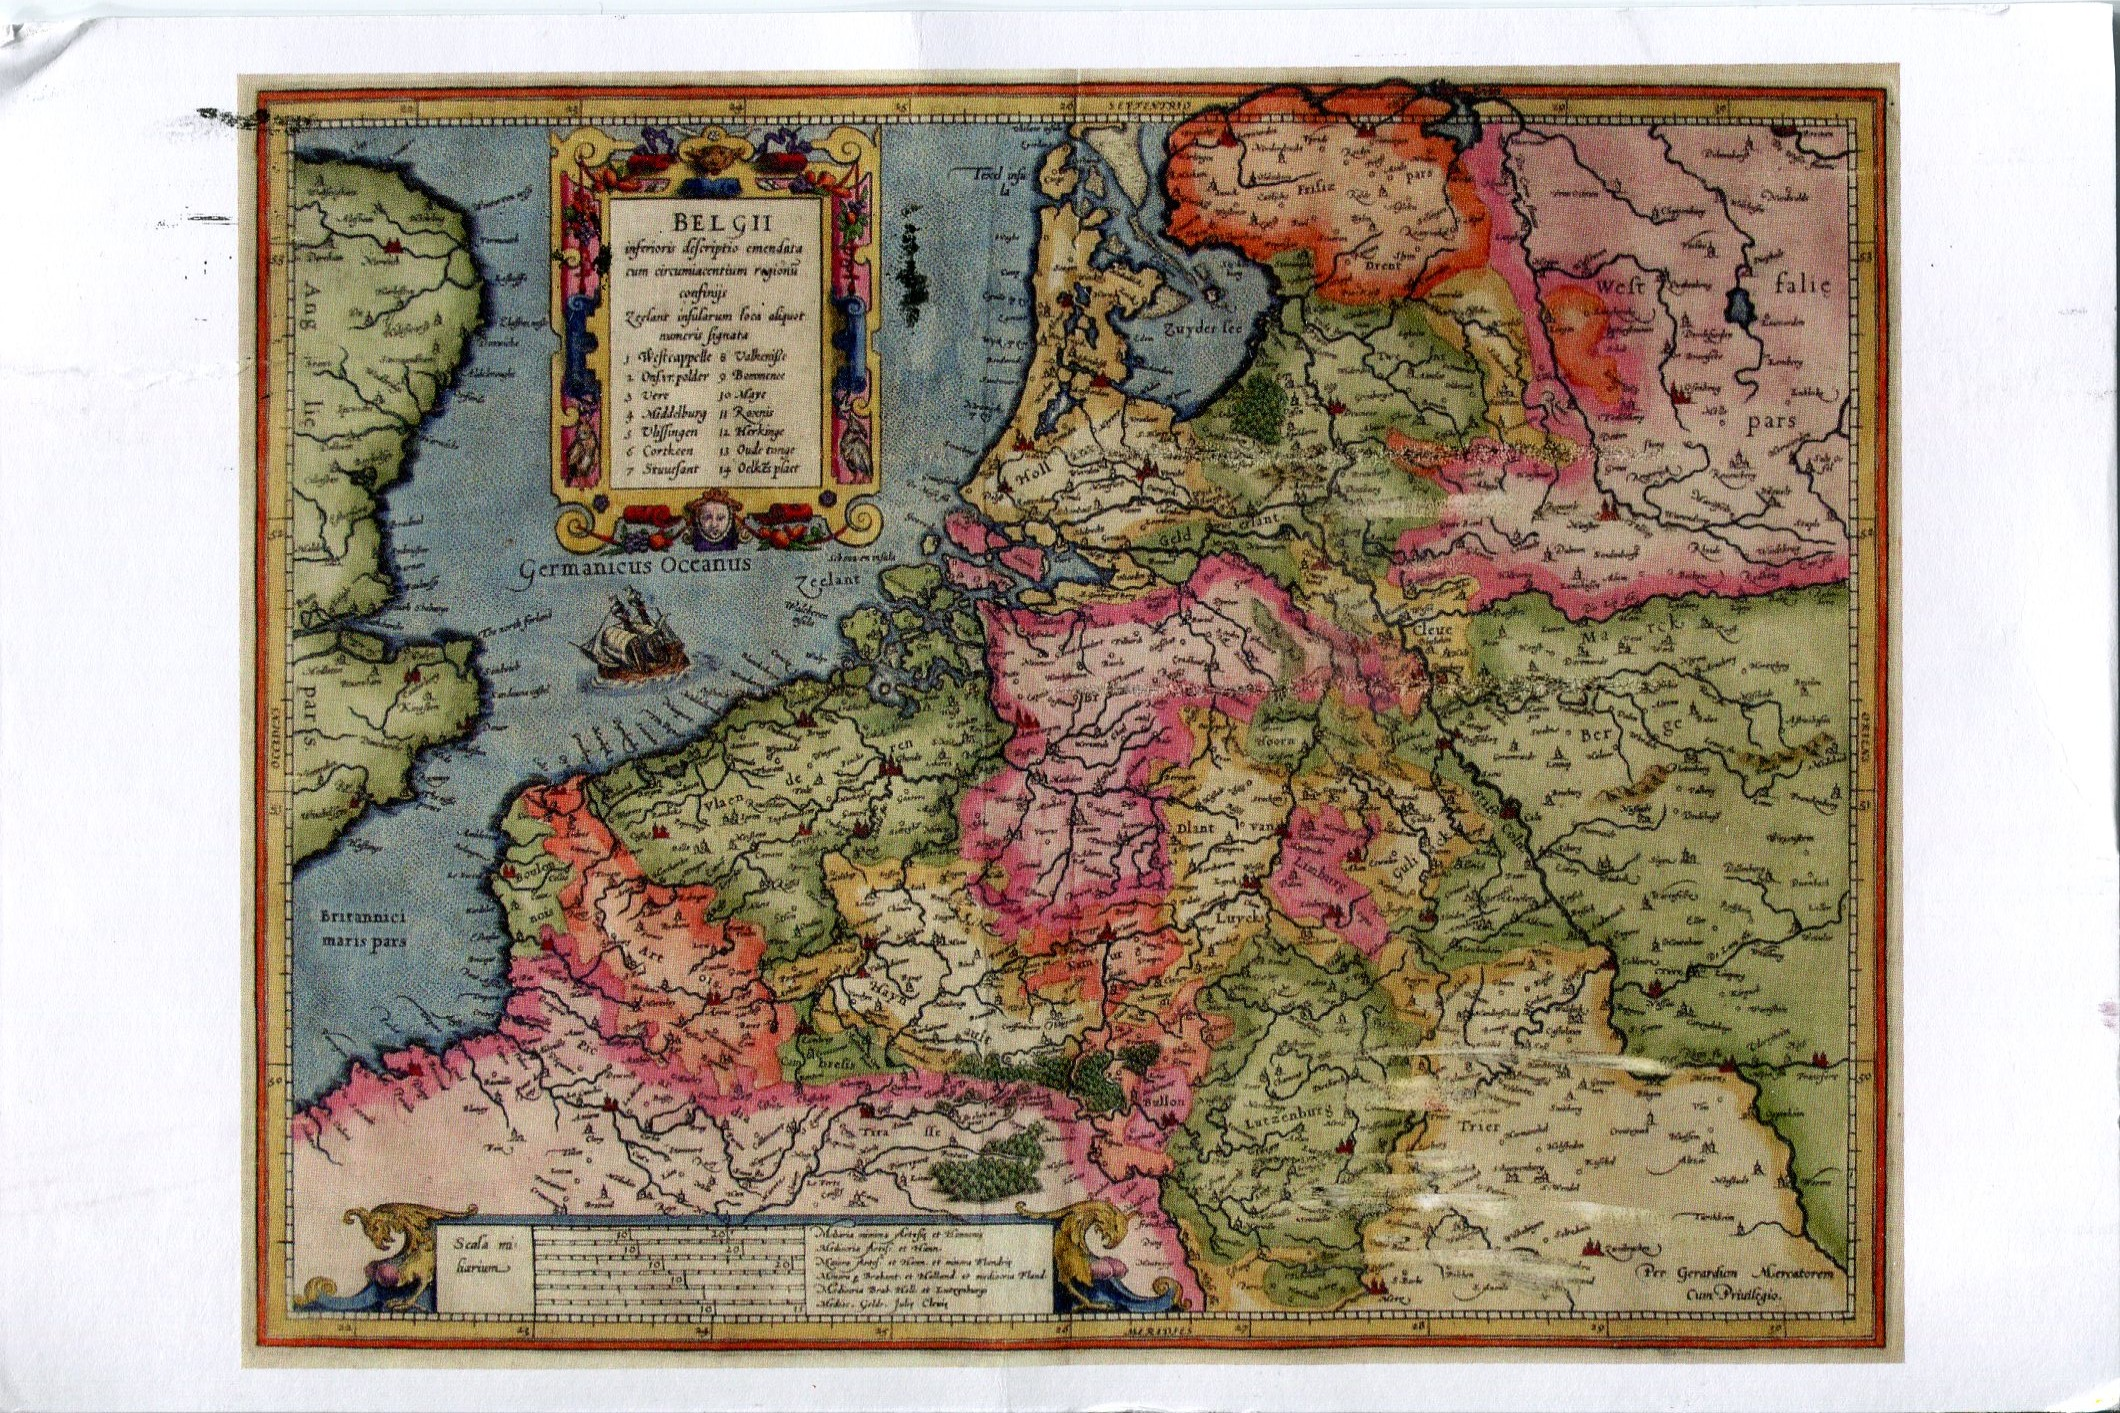 historic map of the netherlands and belgium